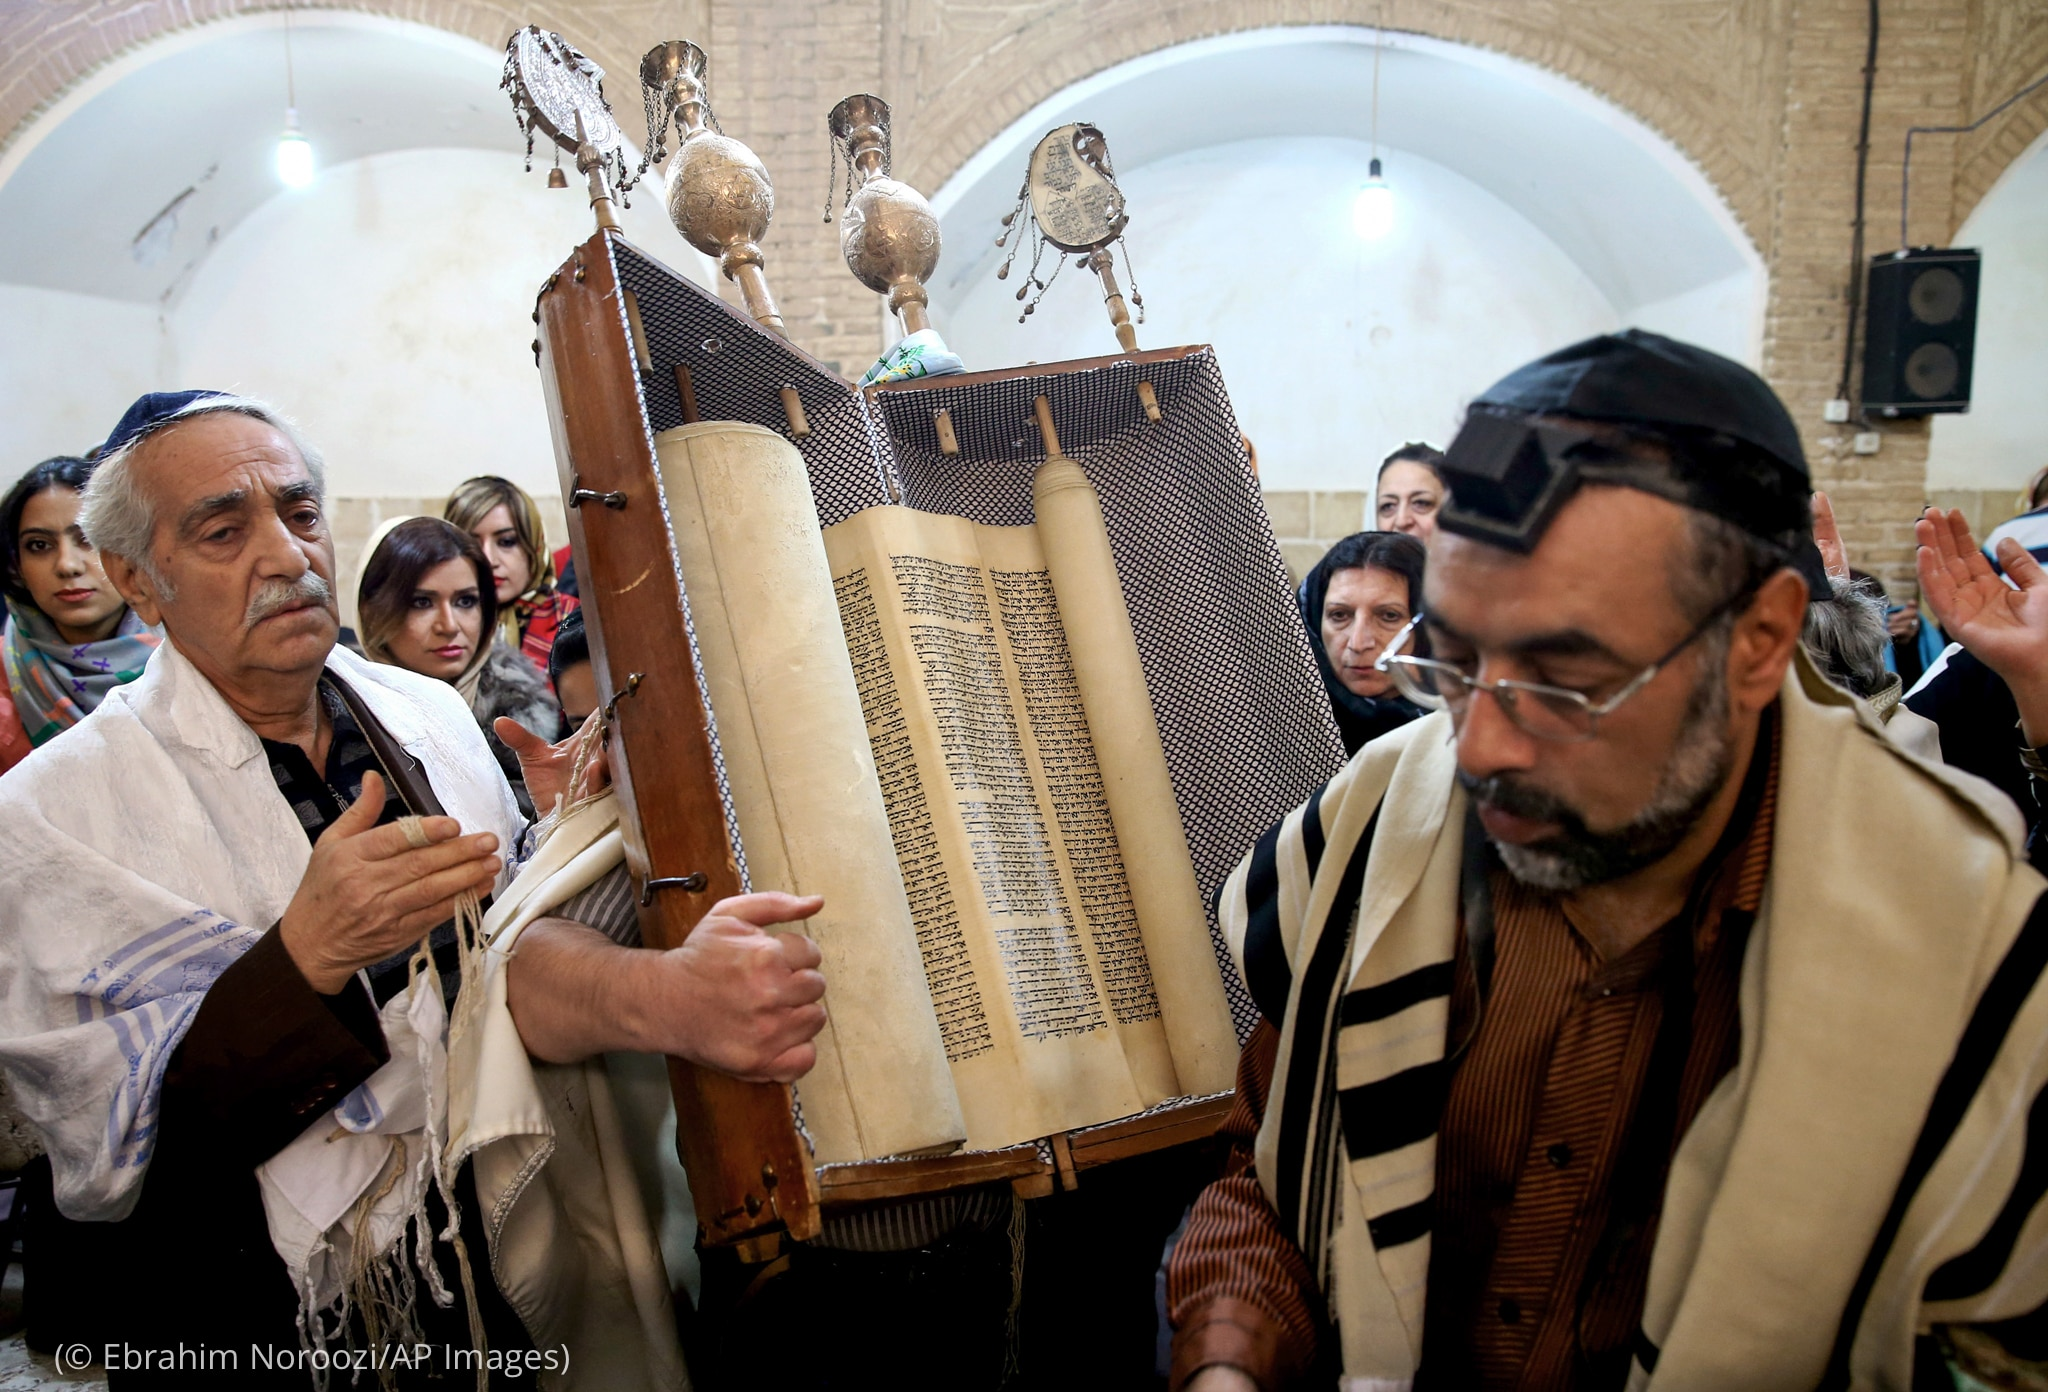 Man holding large box containing scrolls with other people around him (© Ebrahim Noroozi/AP Images)